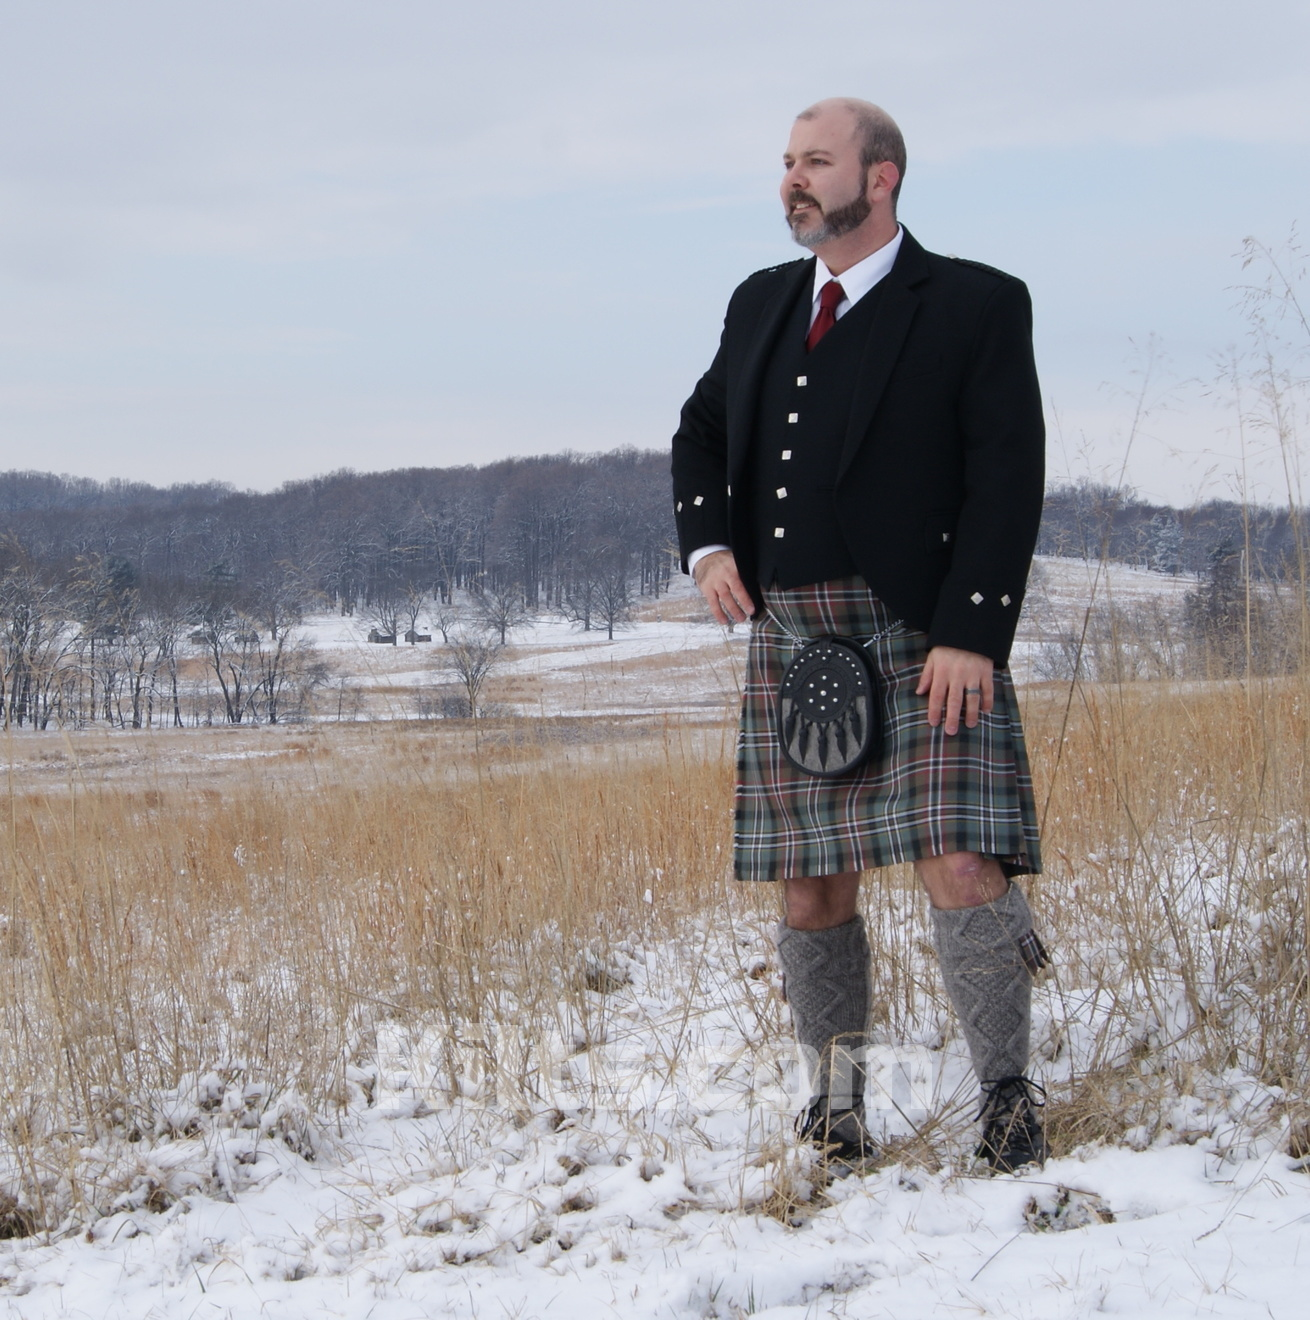 Check out our Argyll Jacket & Vest for Kilts.